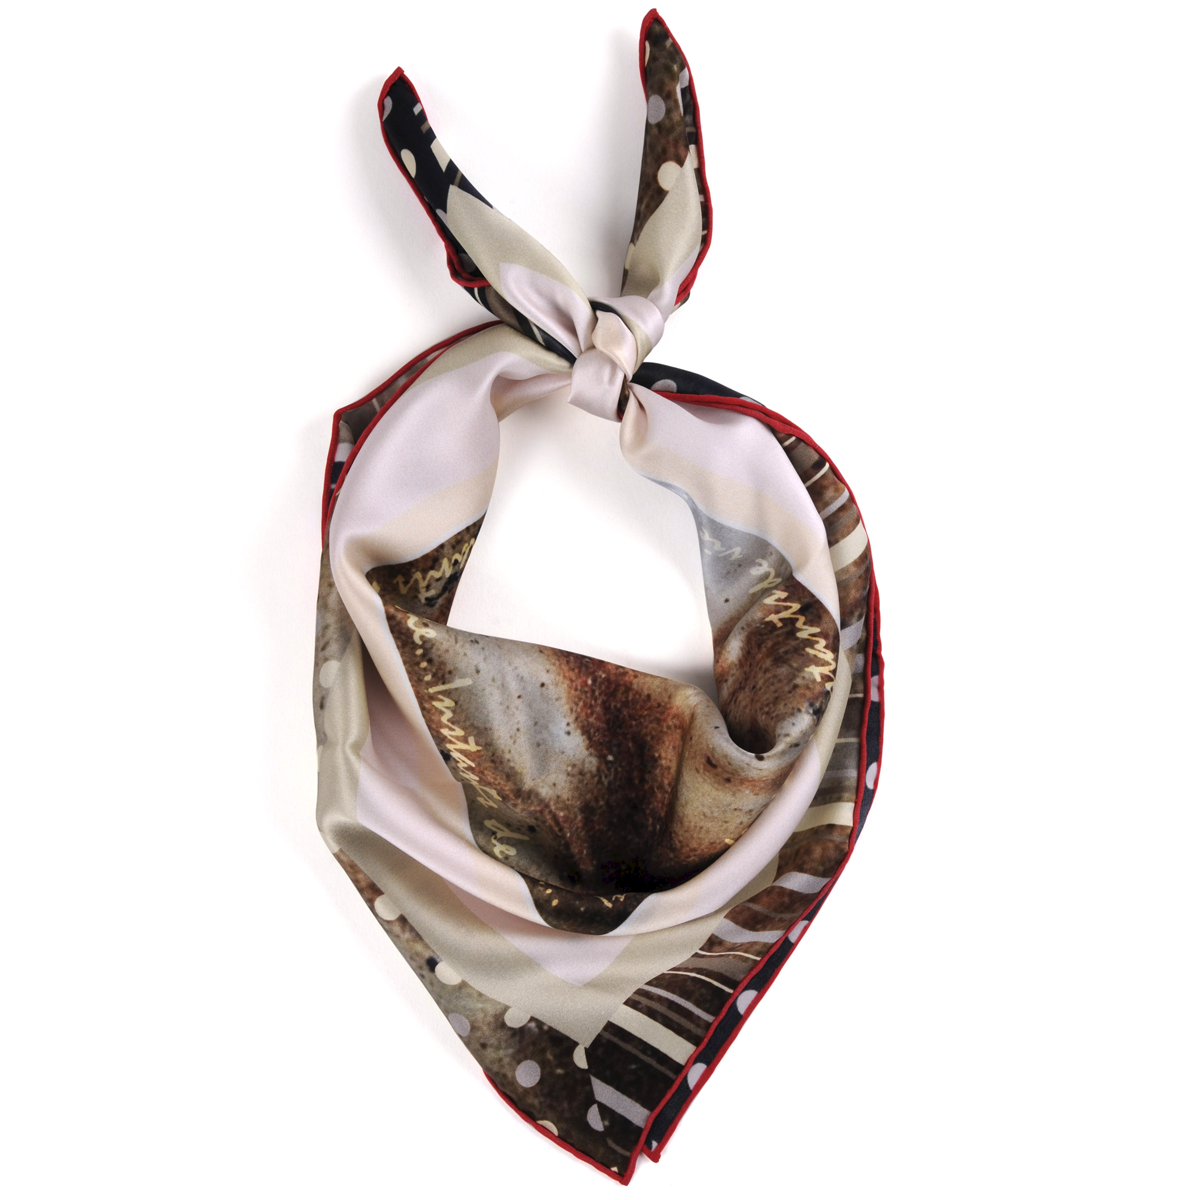 Foulard createur carre soie dune porte little woman paris